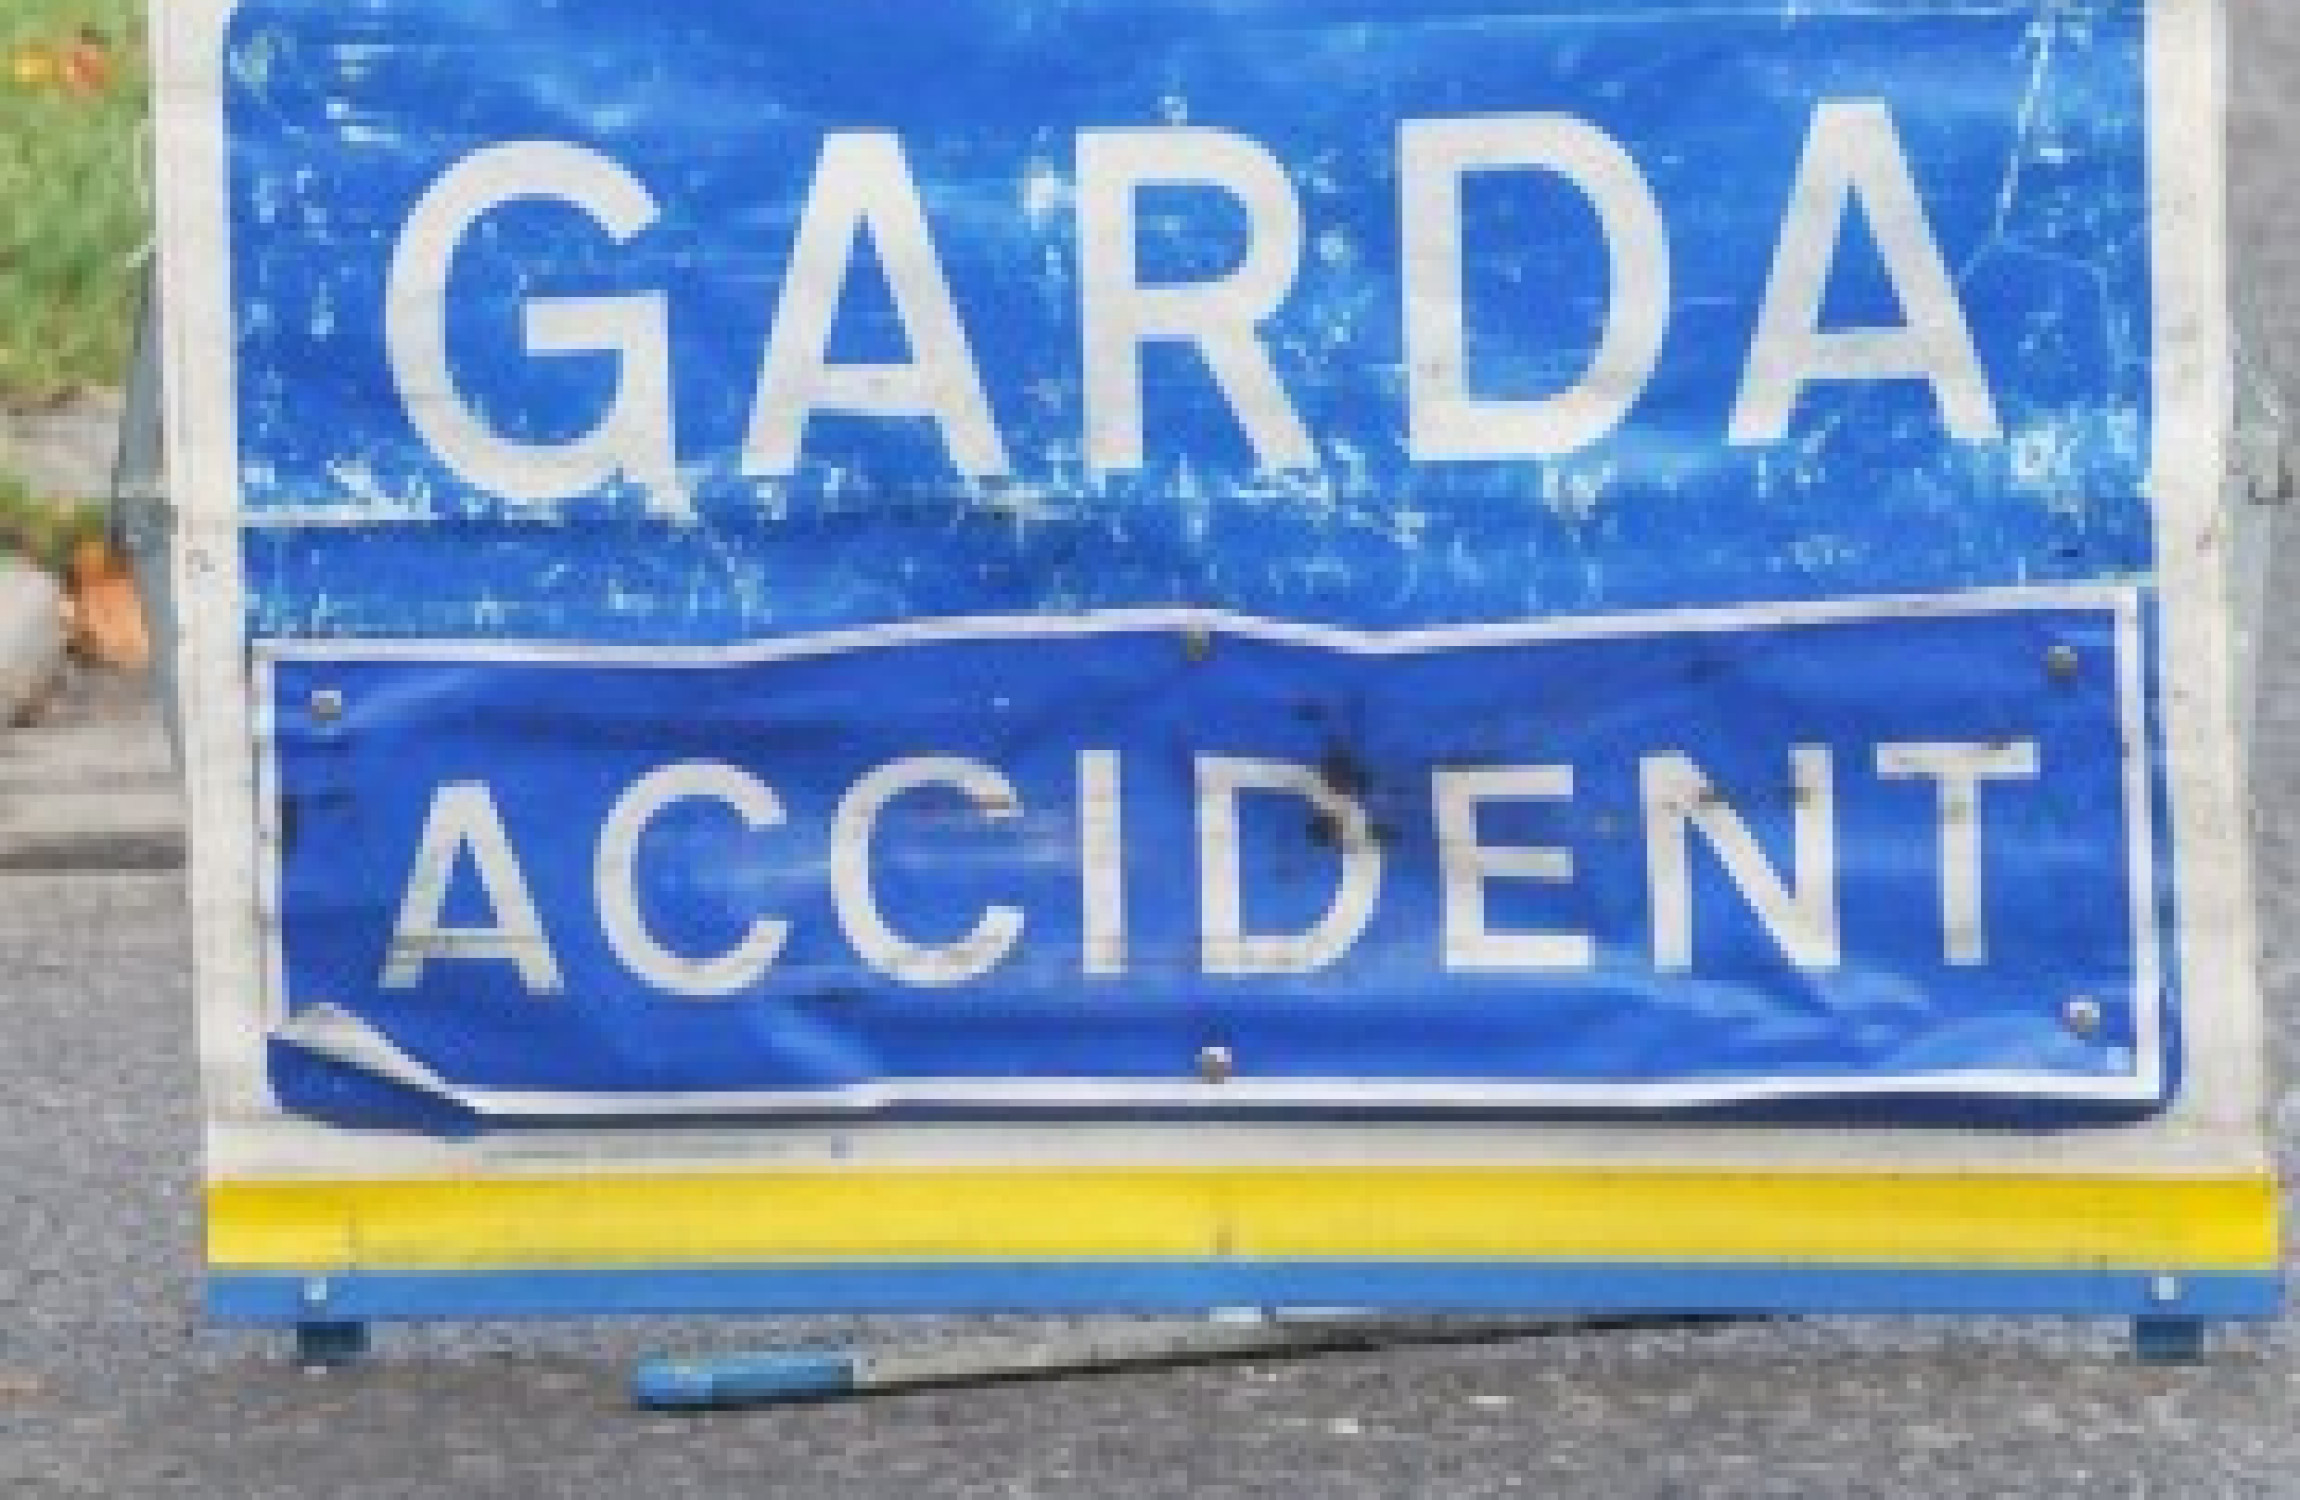 Cyclist dies in fatal collision in Cork